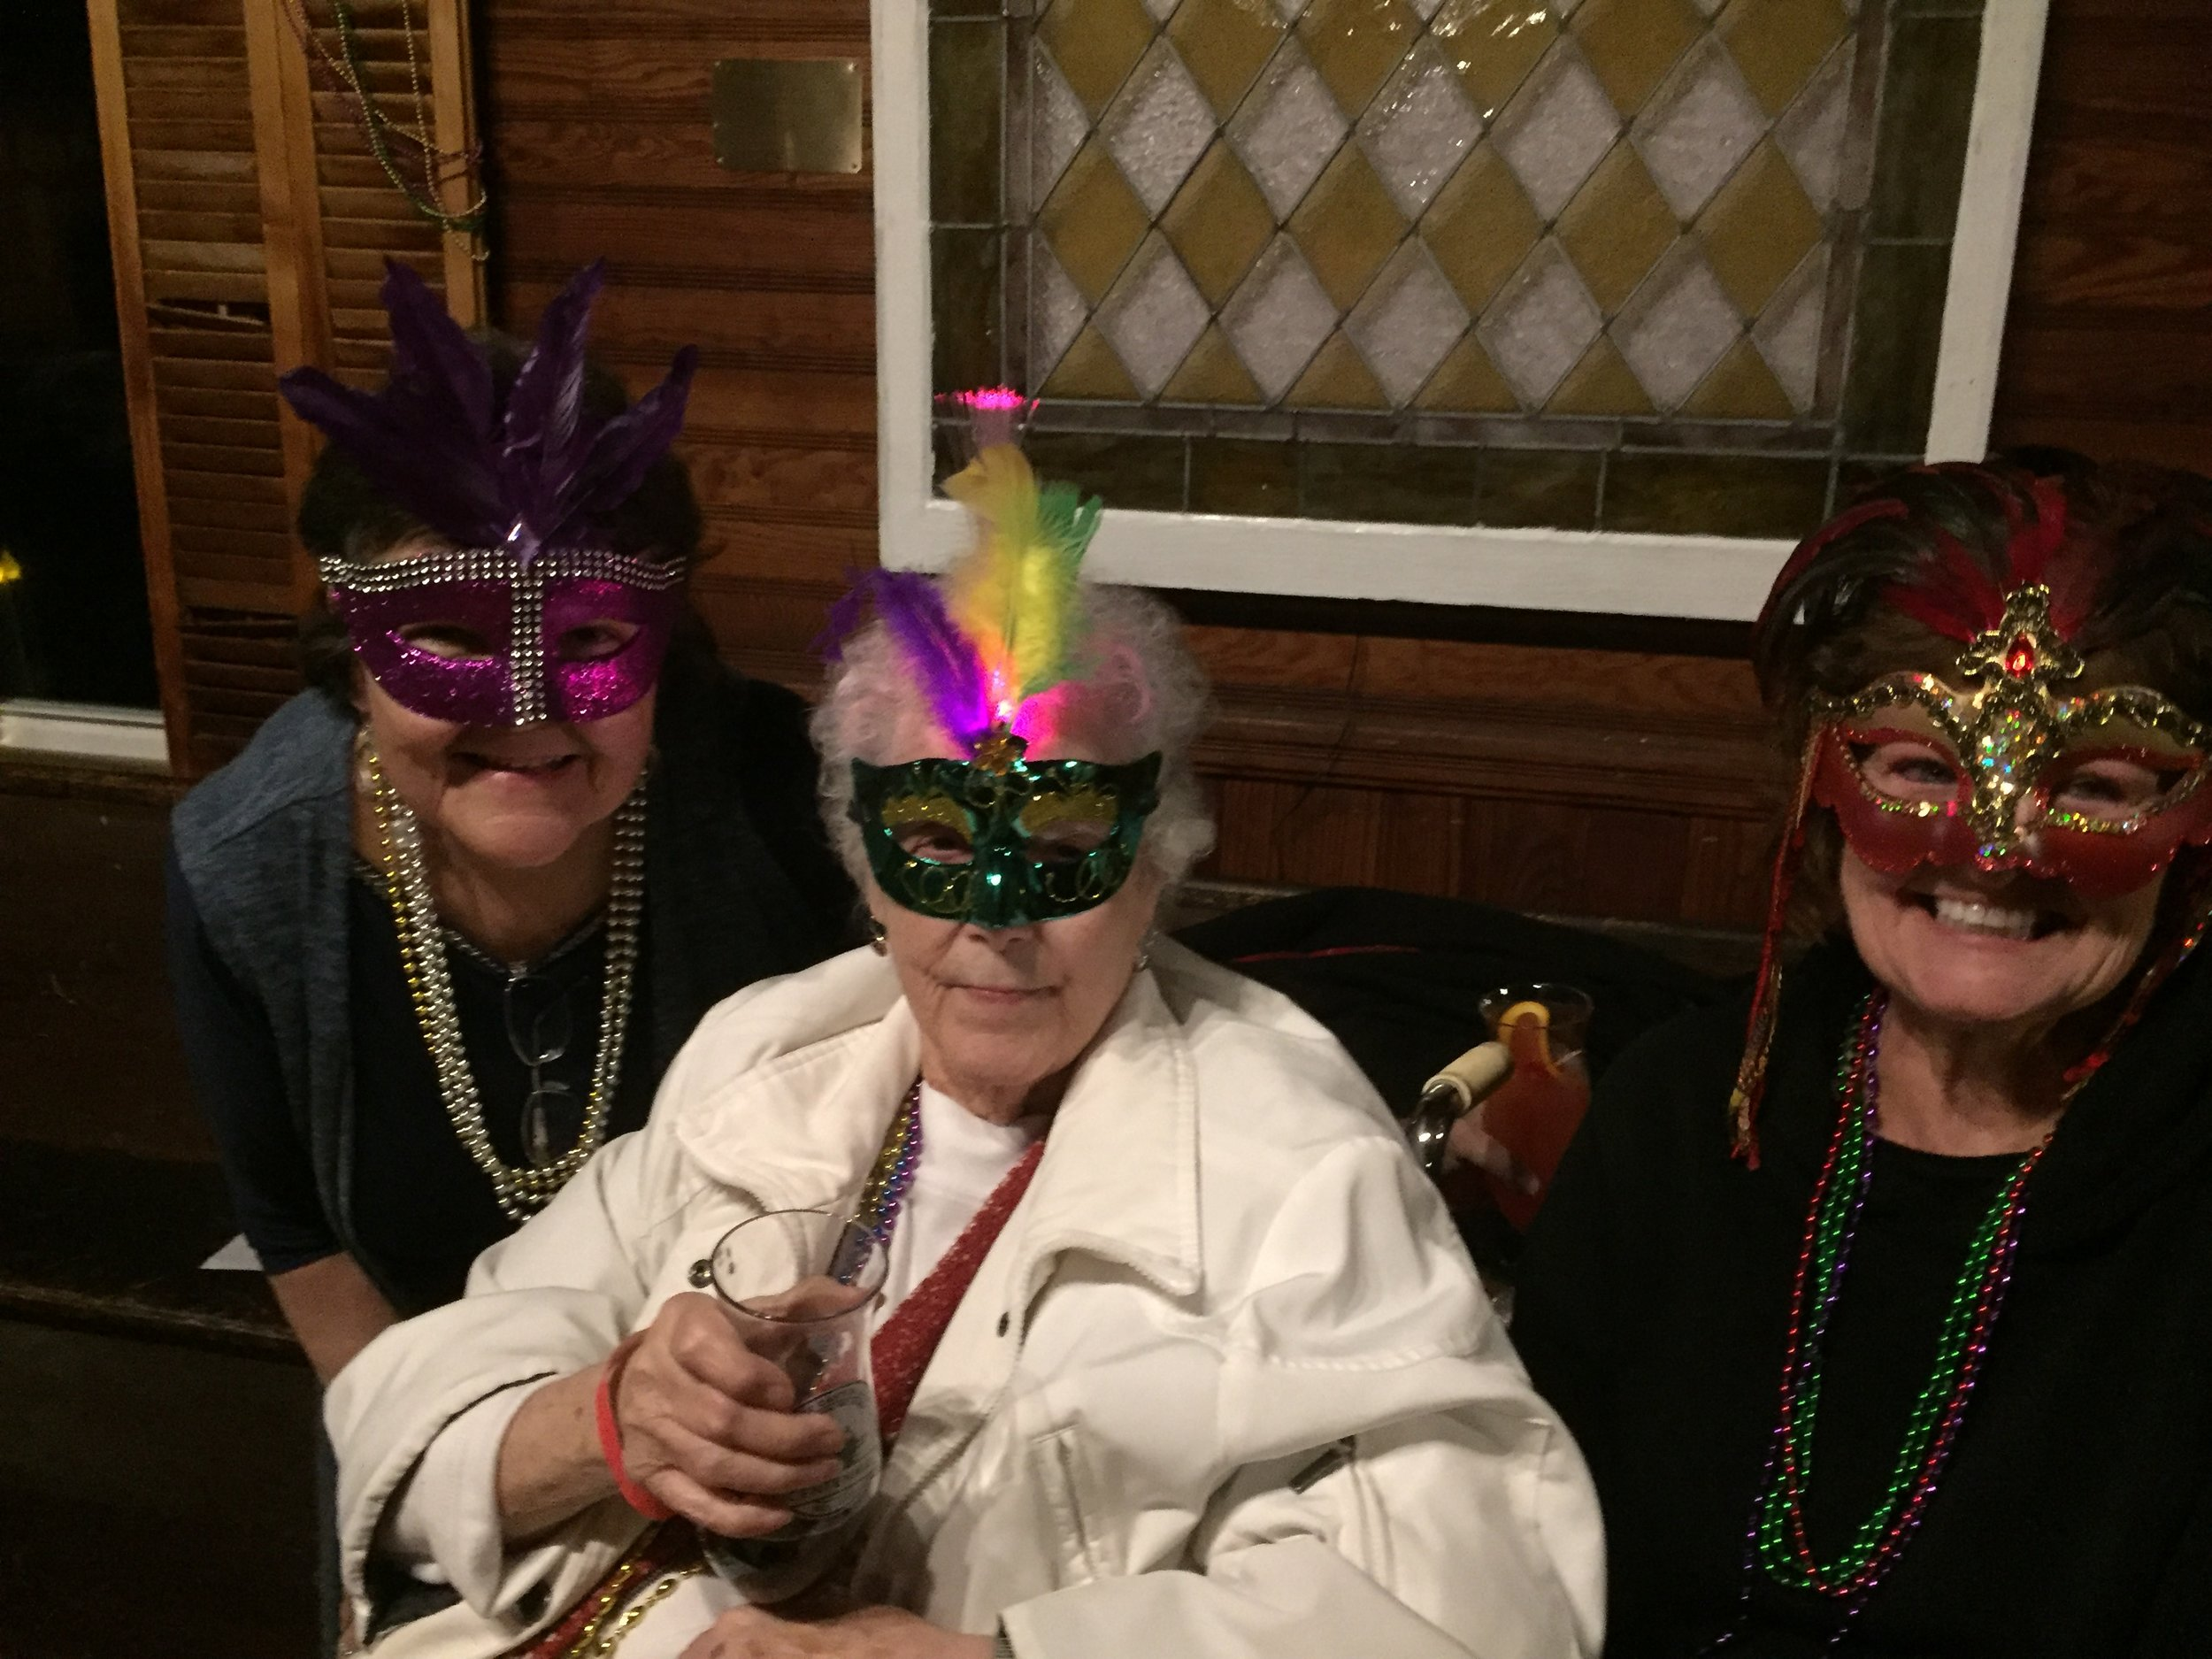 Guest came in Mardi Gras costume like these mystery guests!